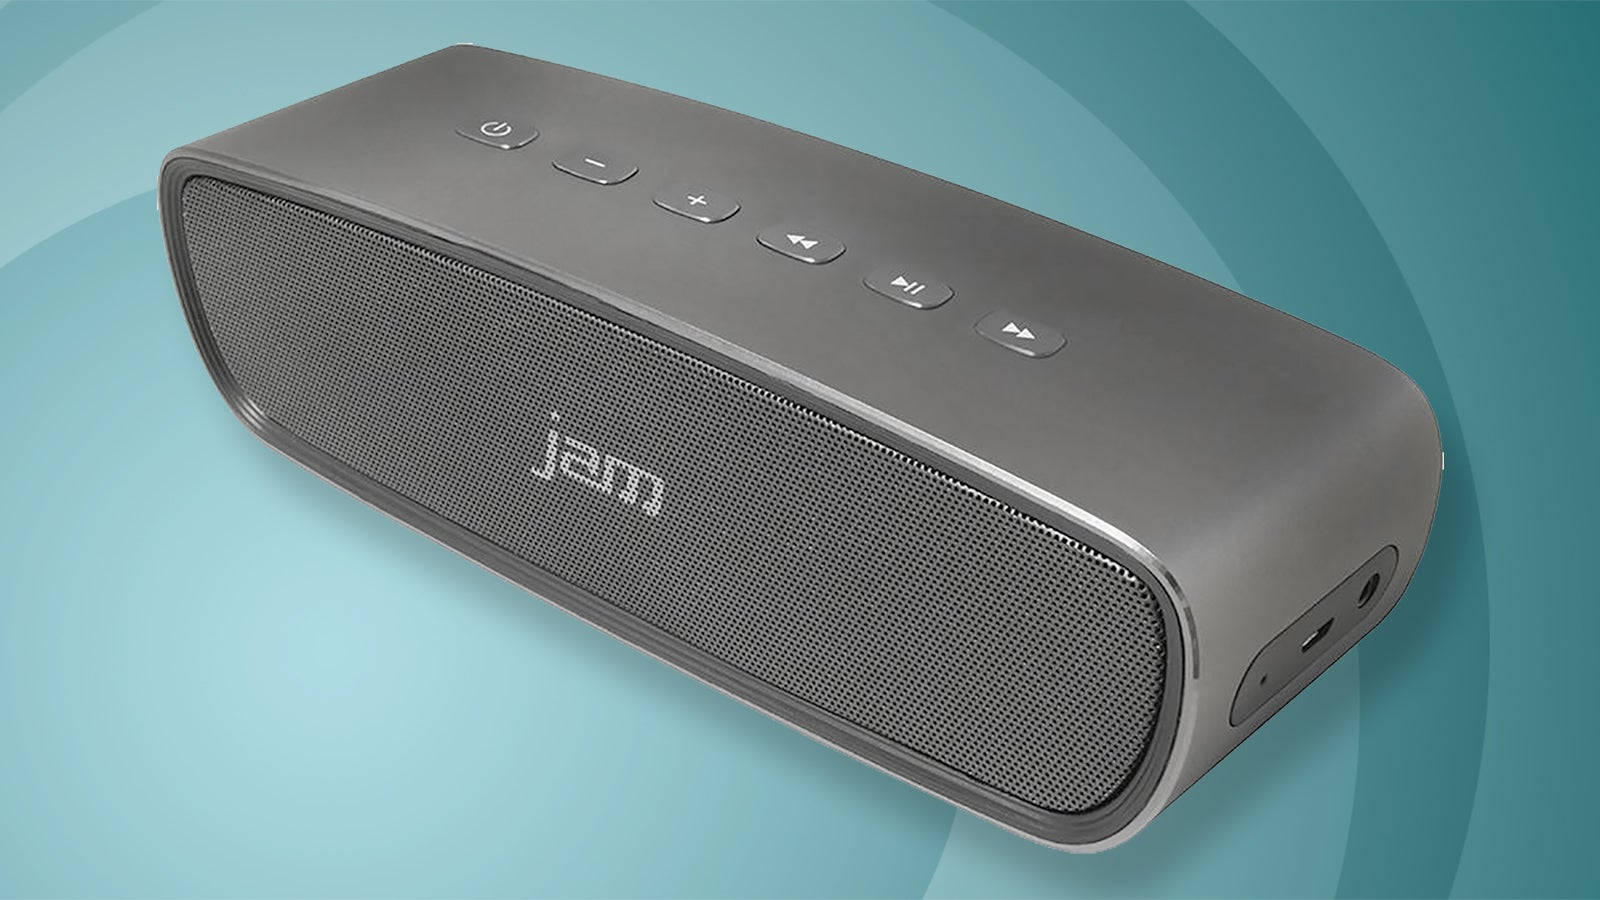 Jam Heavy Metal Hx P920 Review Trusted Reviews